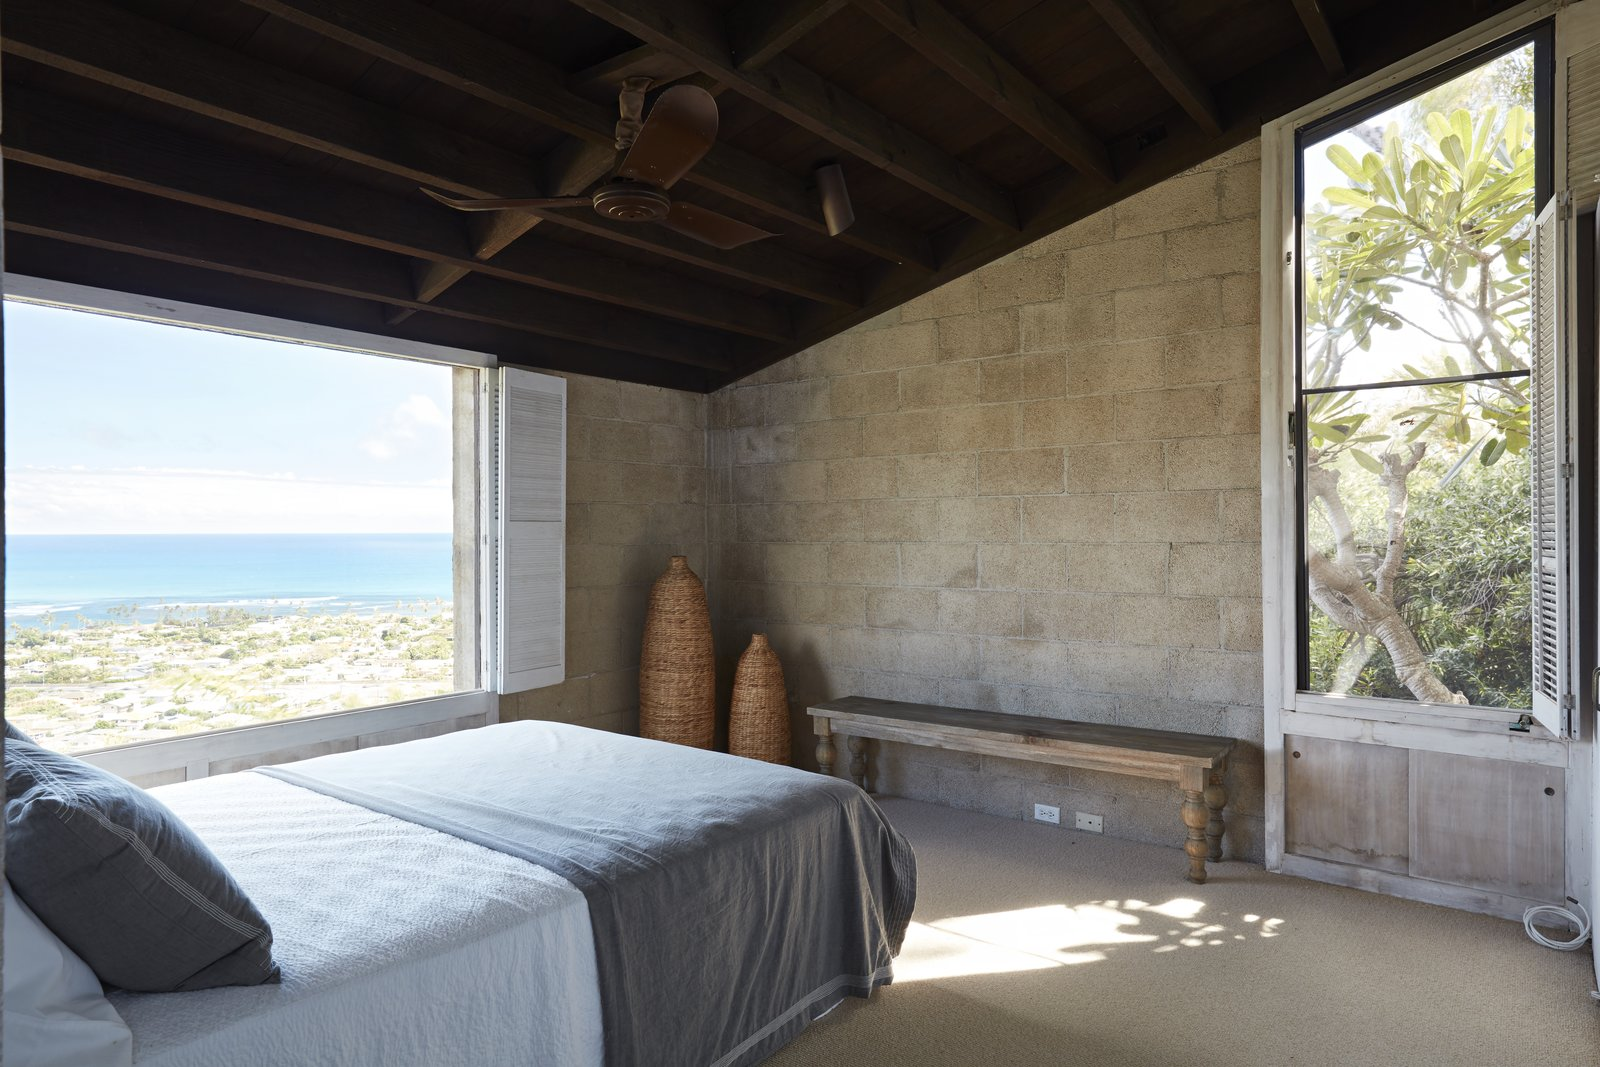 Bedroom, Bench, Bed, Carpet, and Ceiling The view from another bedroom.  Best Bedroom Bench Photos from A Famed Japanese Composer's Effortless Honolulu Hideout Asks $2.95M